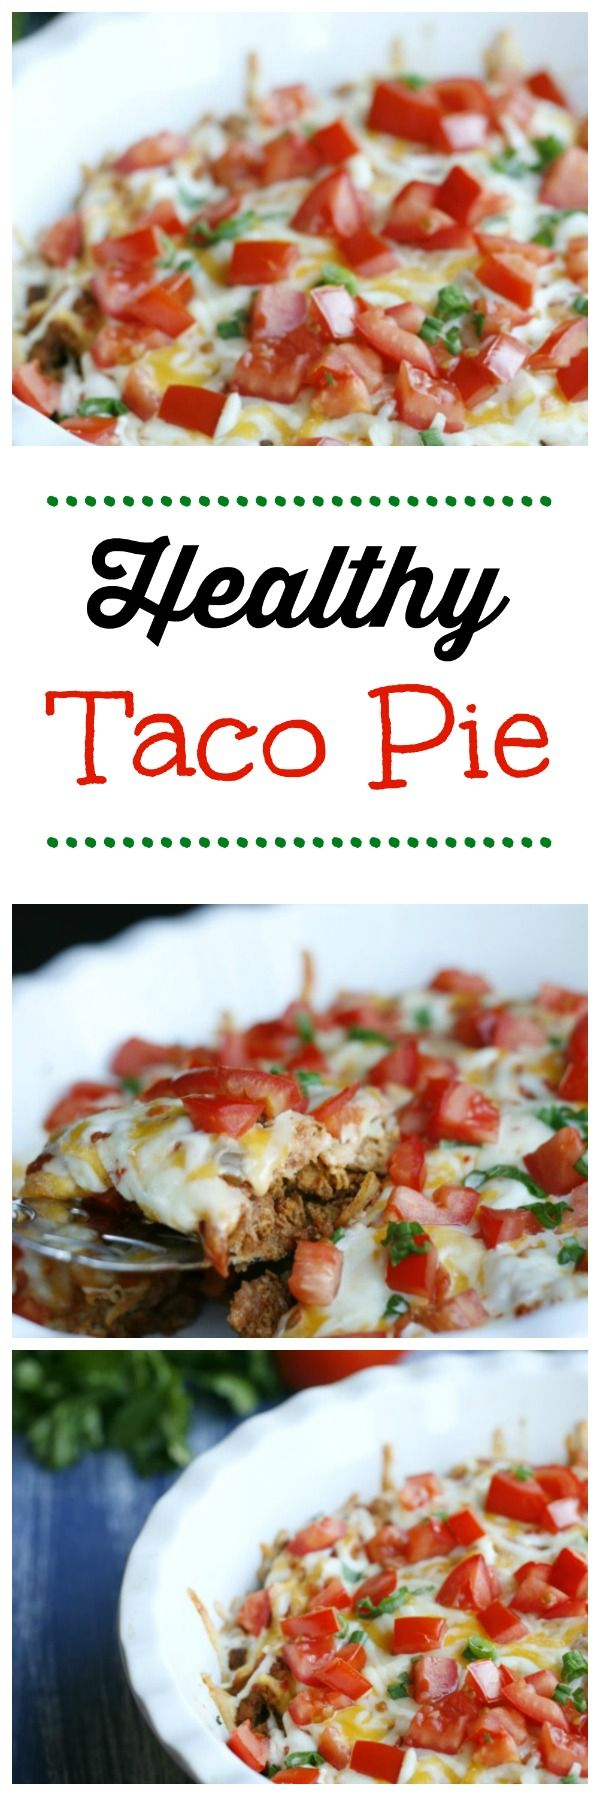 Healthy Taco Pie. Dinner on the table in 30 minutes! A great family friendly recipe.